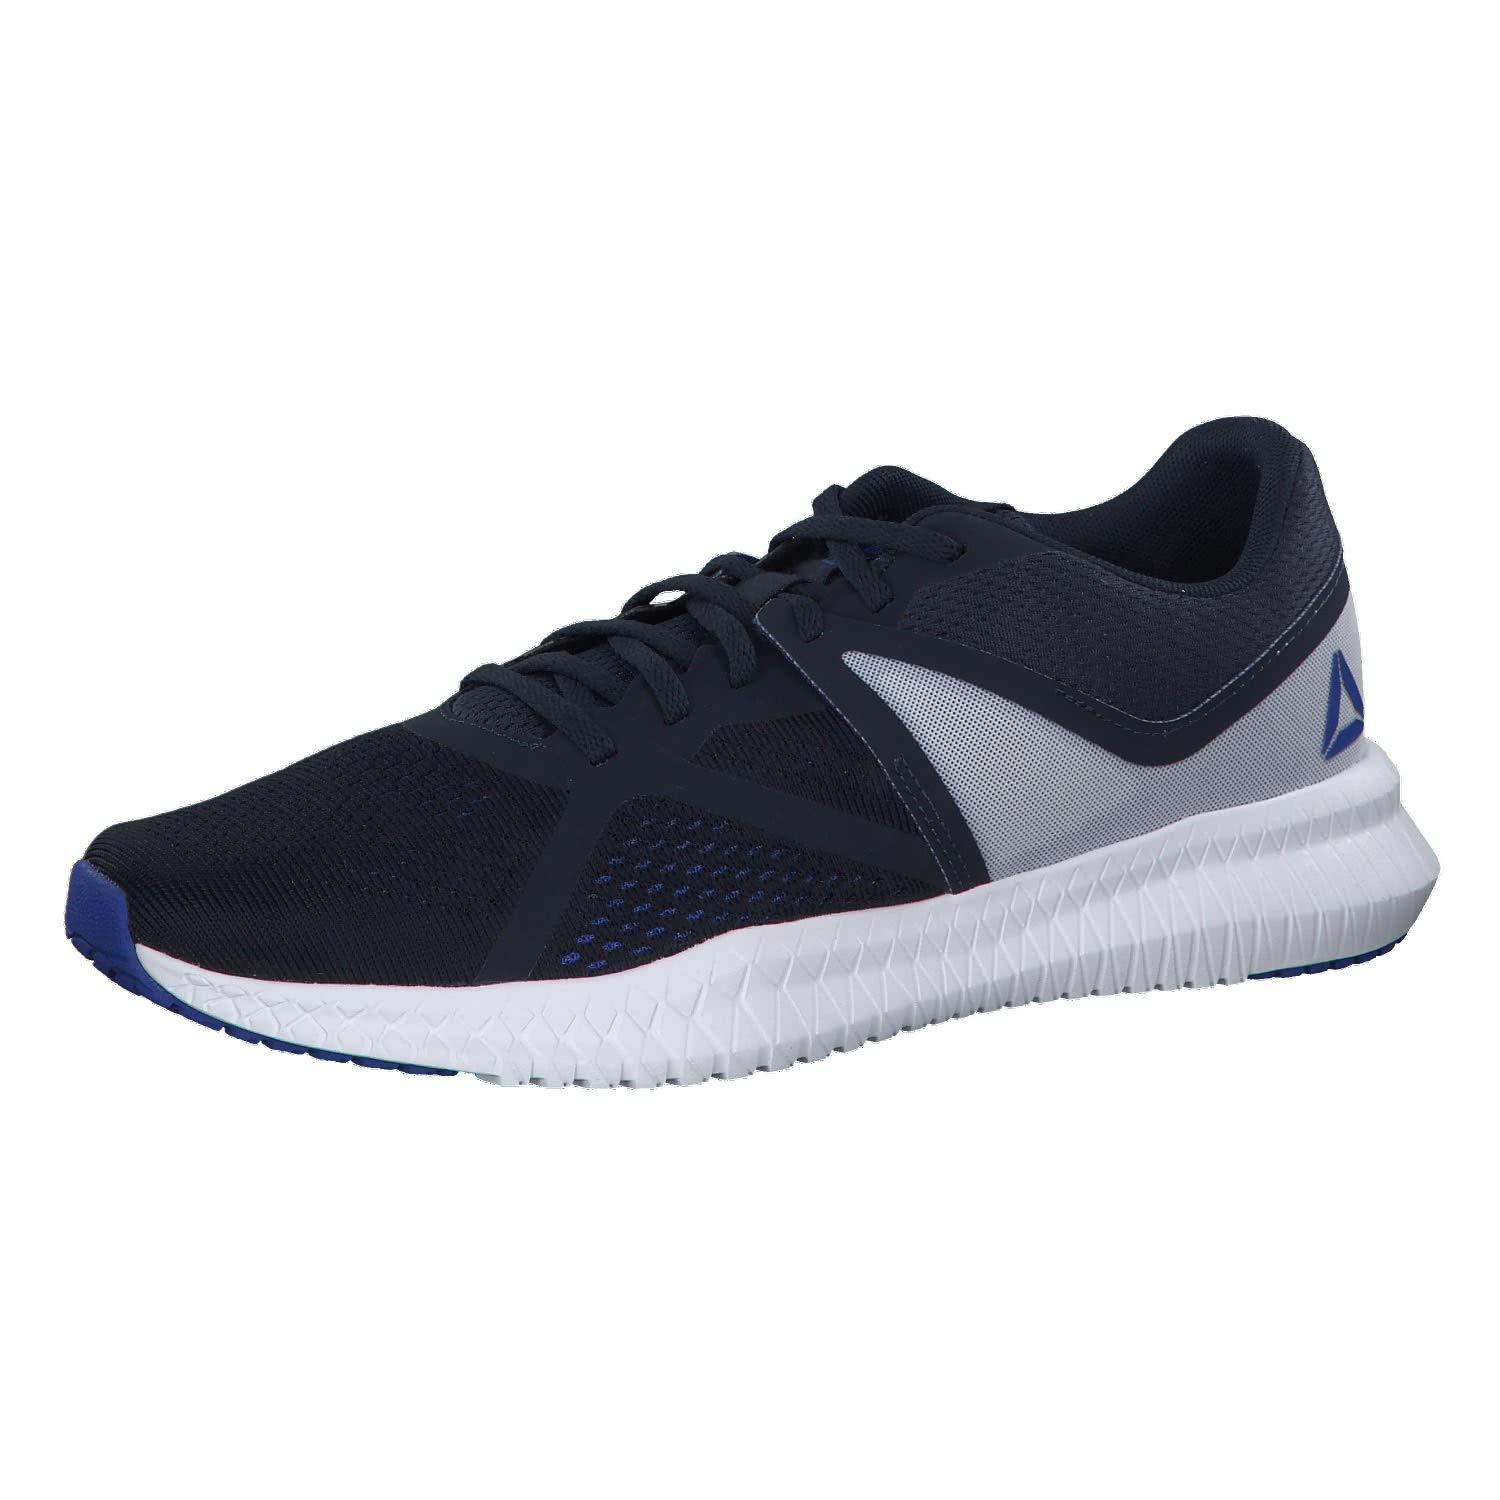 Reebok Herren Trainingsschuhe Flexagon Fit